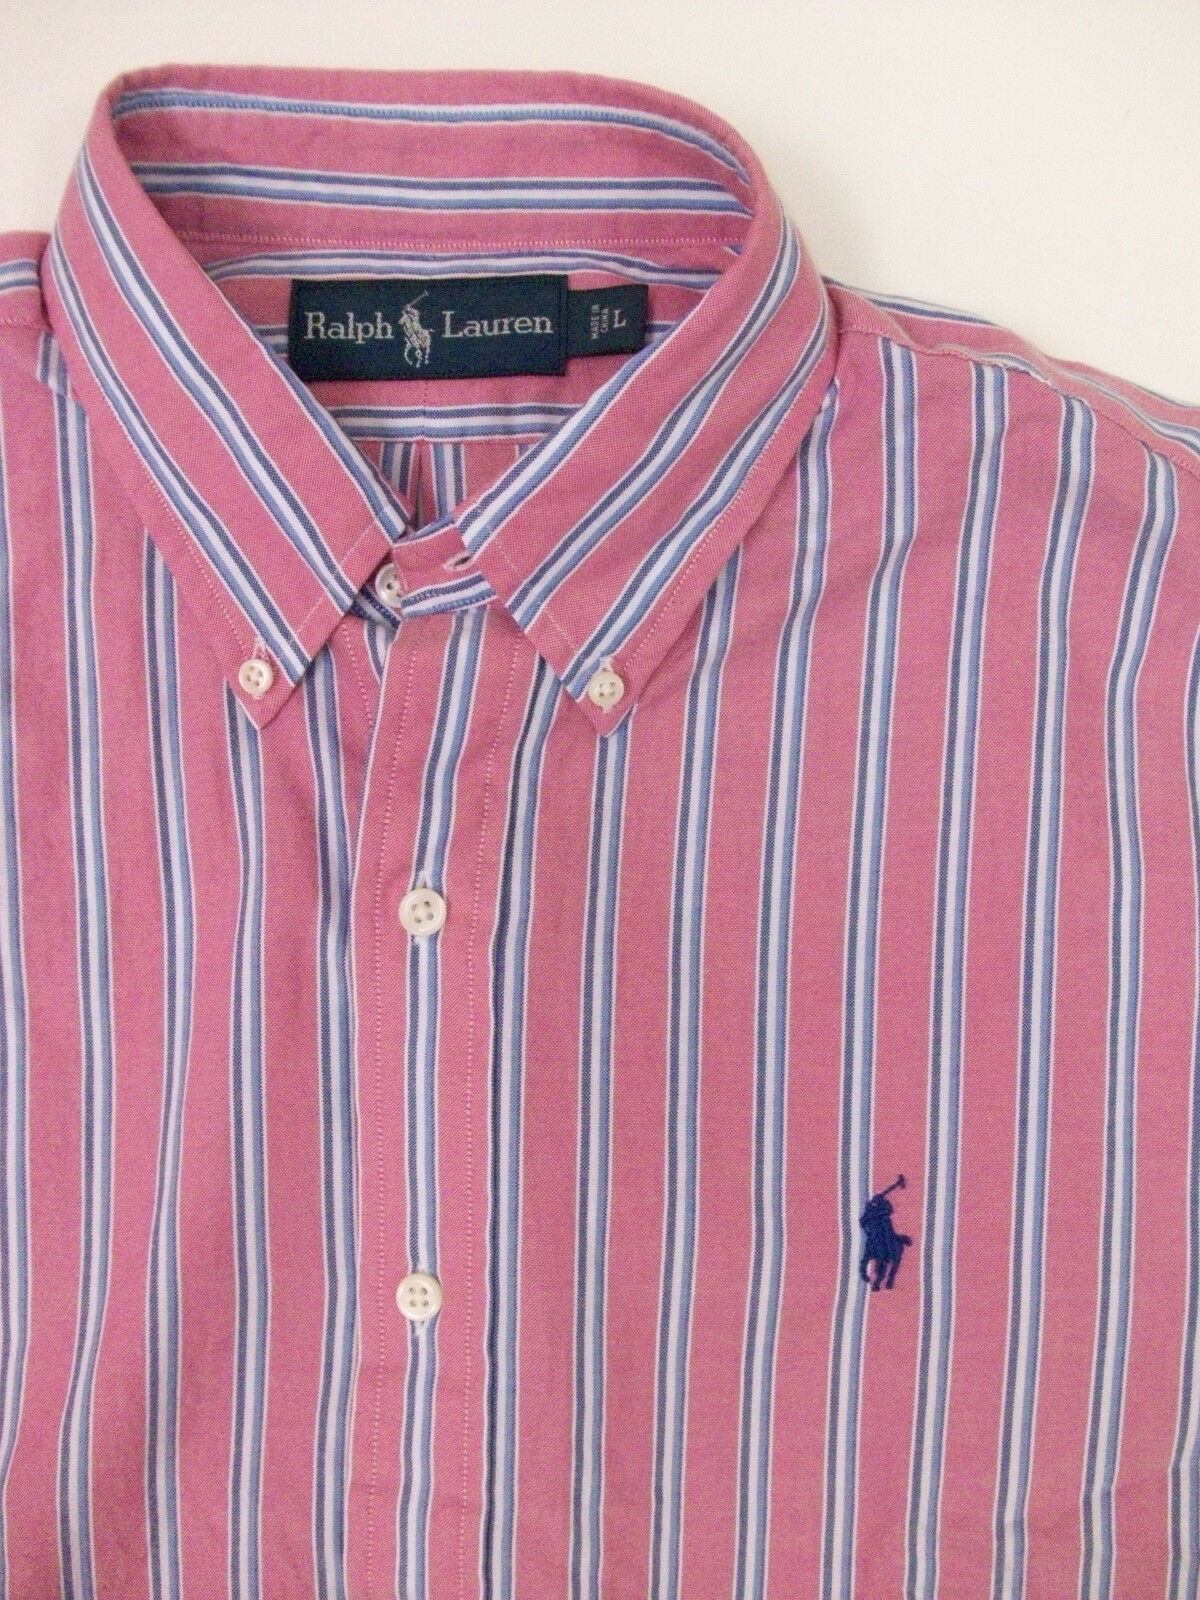 Polo Ralph Shirt Lauren Striped Lightweight Oxford Shirt Ralph  98 rosa Turquoise W Pony NWT 7c1100